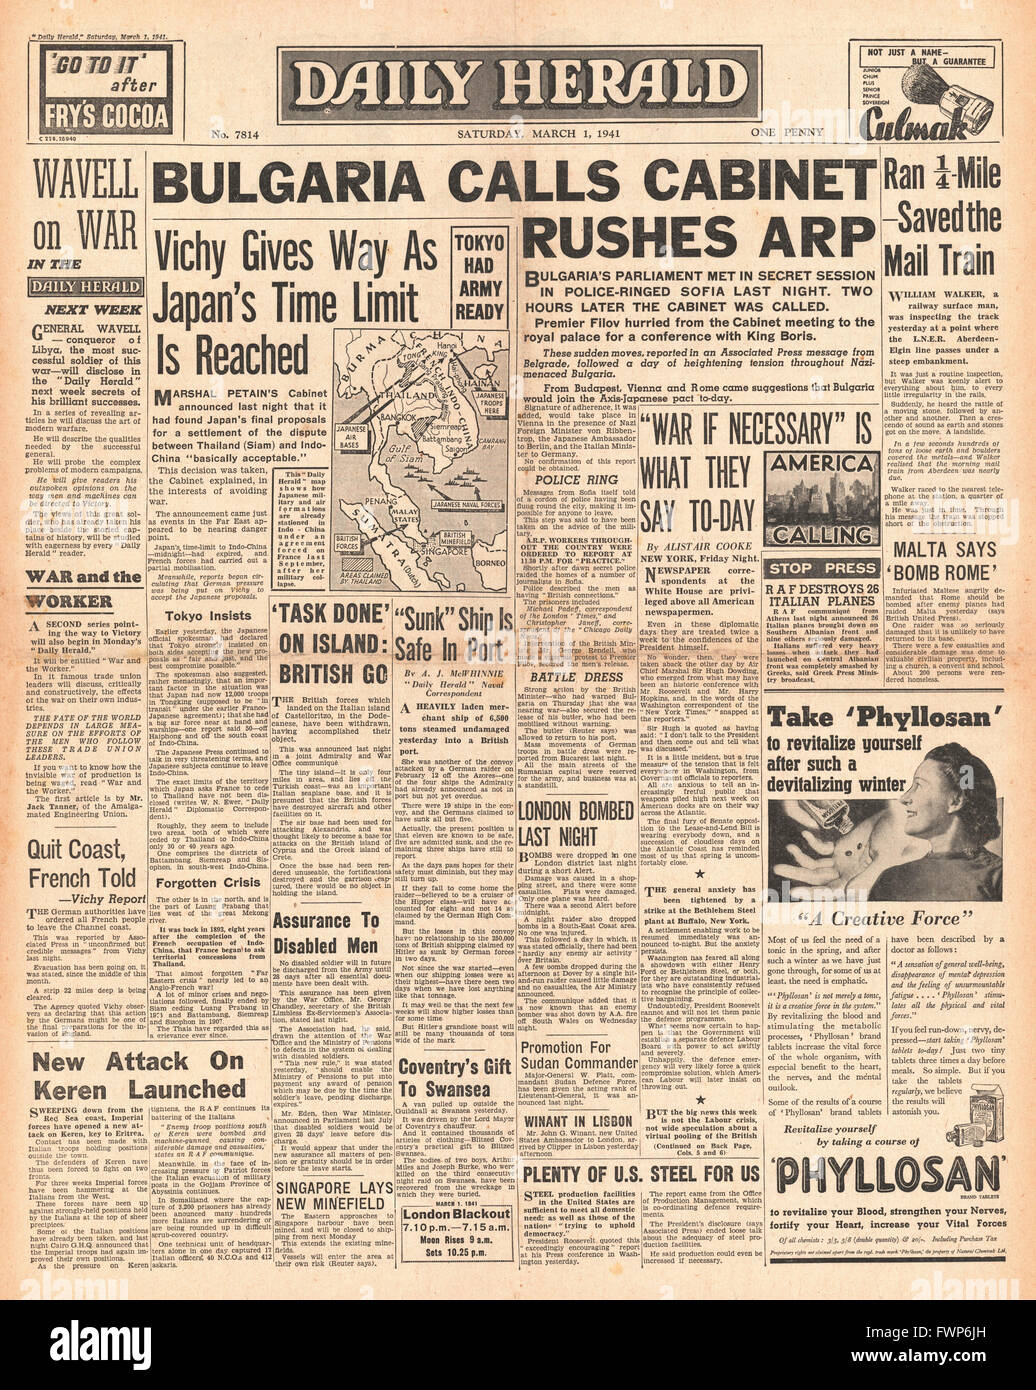 1941 front page Daily Herald Bulgaria crisis - Stock Image